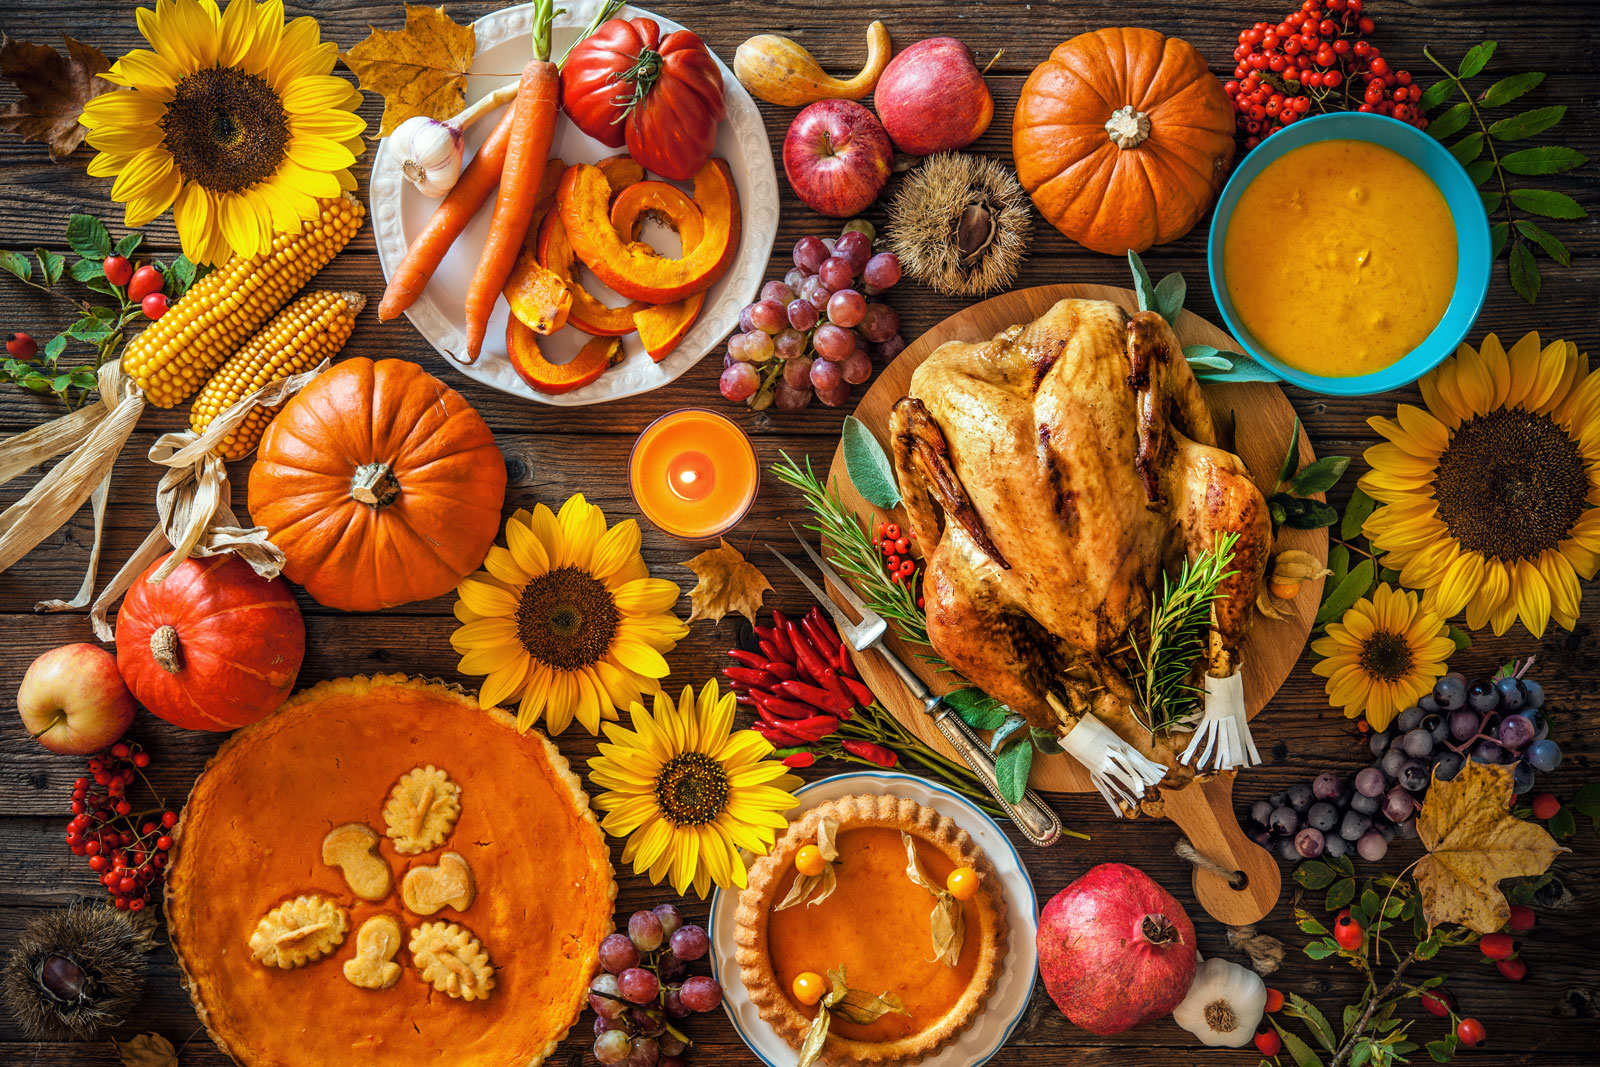 Table of Thanksgiving foods